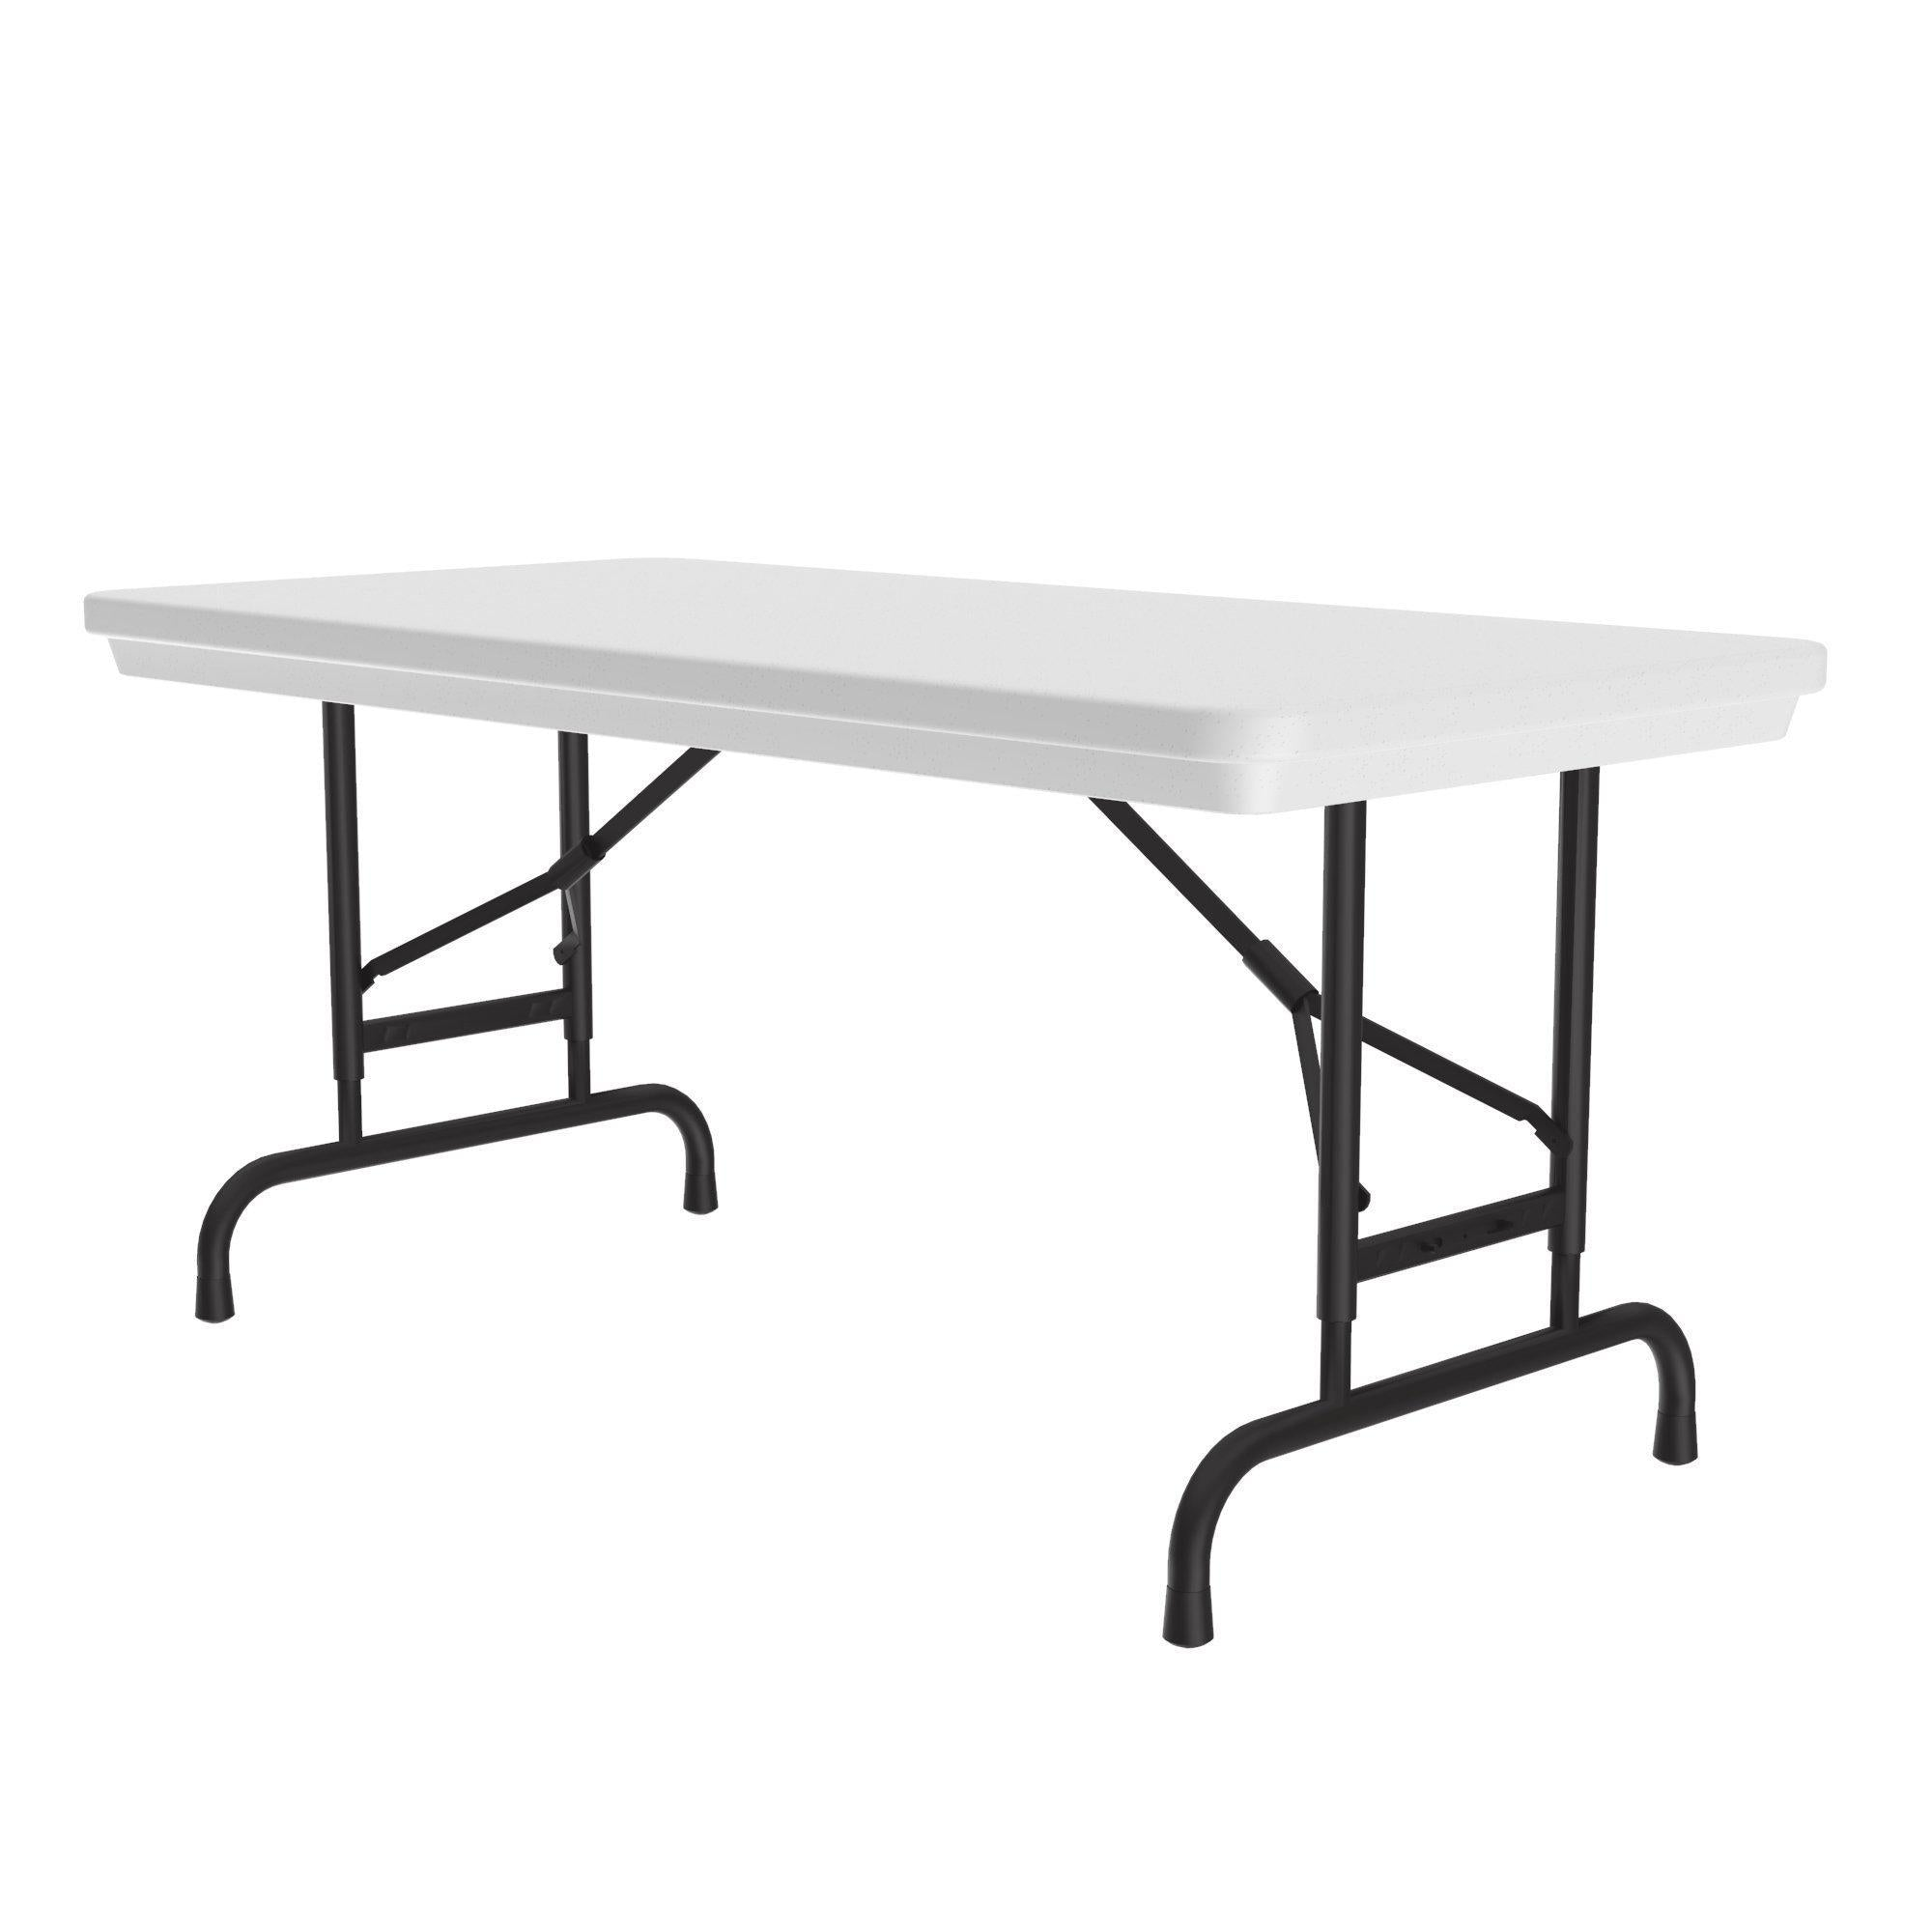 Heavy Duty Commercial Use Blow Molded Folding Table, Standard Colors, Adjustable Height, 24 x 48